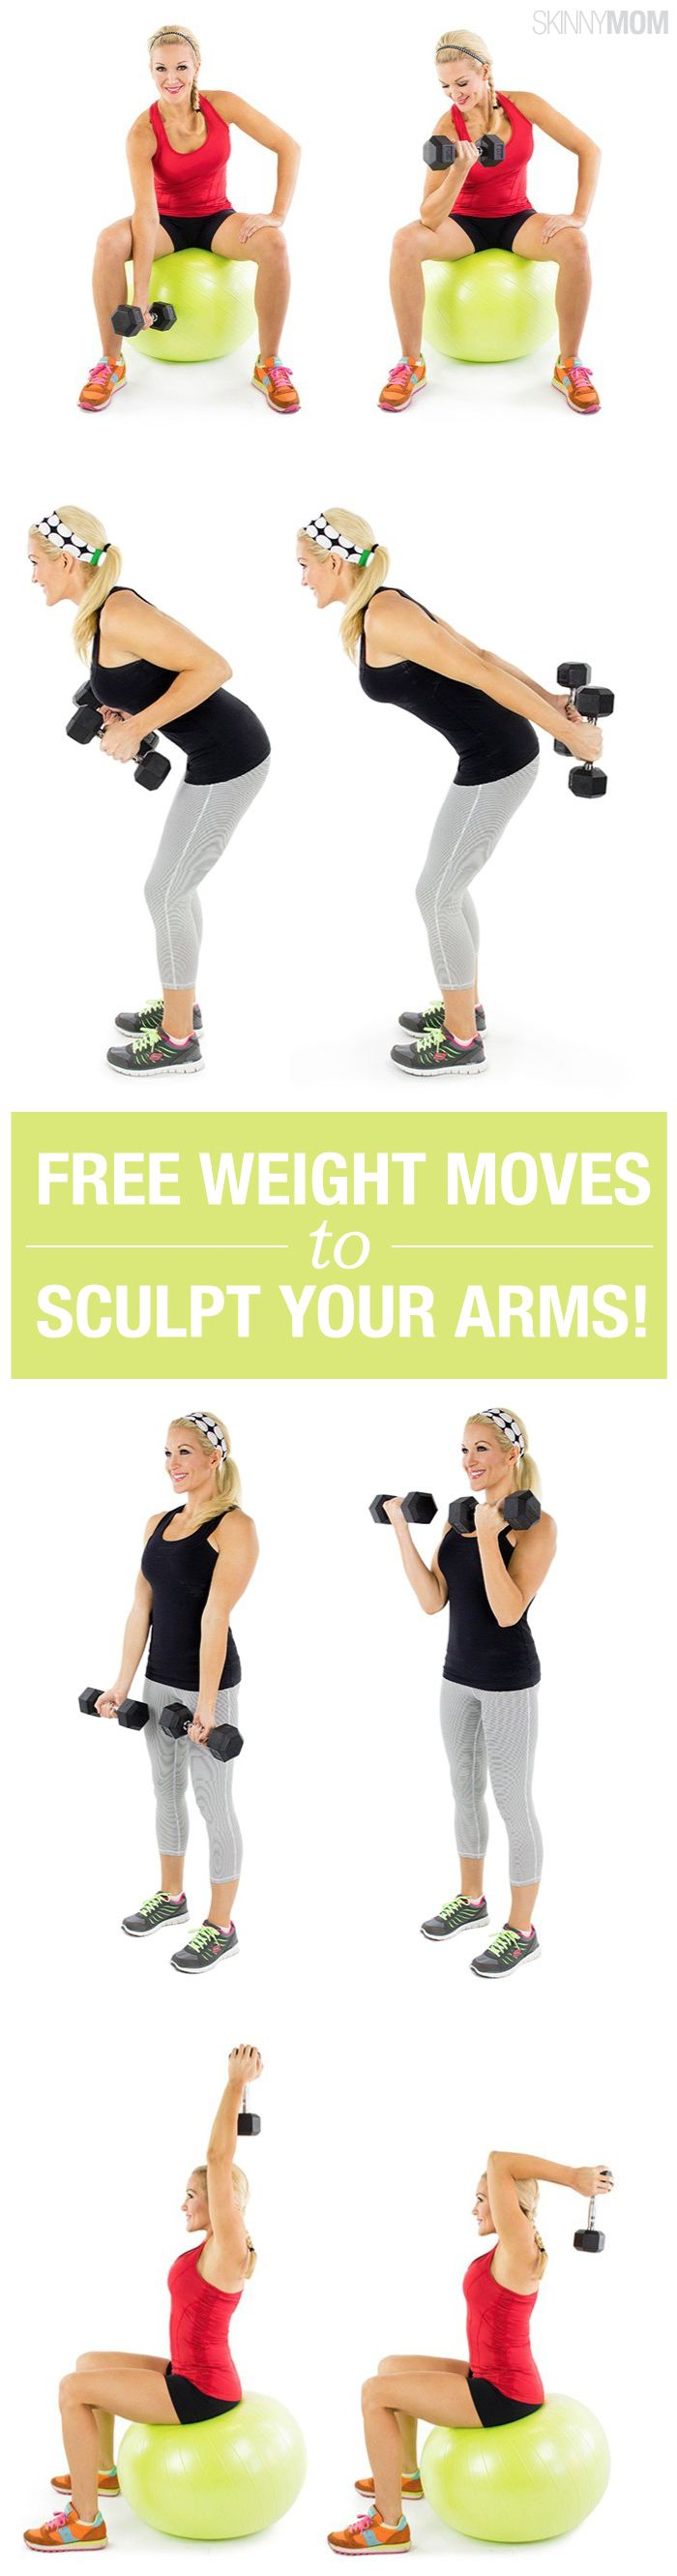 17 Exercises for Toned Arms | Skinny Mom | Where Moms Get the Skinny on Healthy Living Tone your arms in just 17 moves!